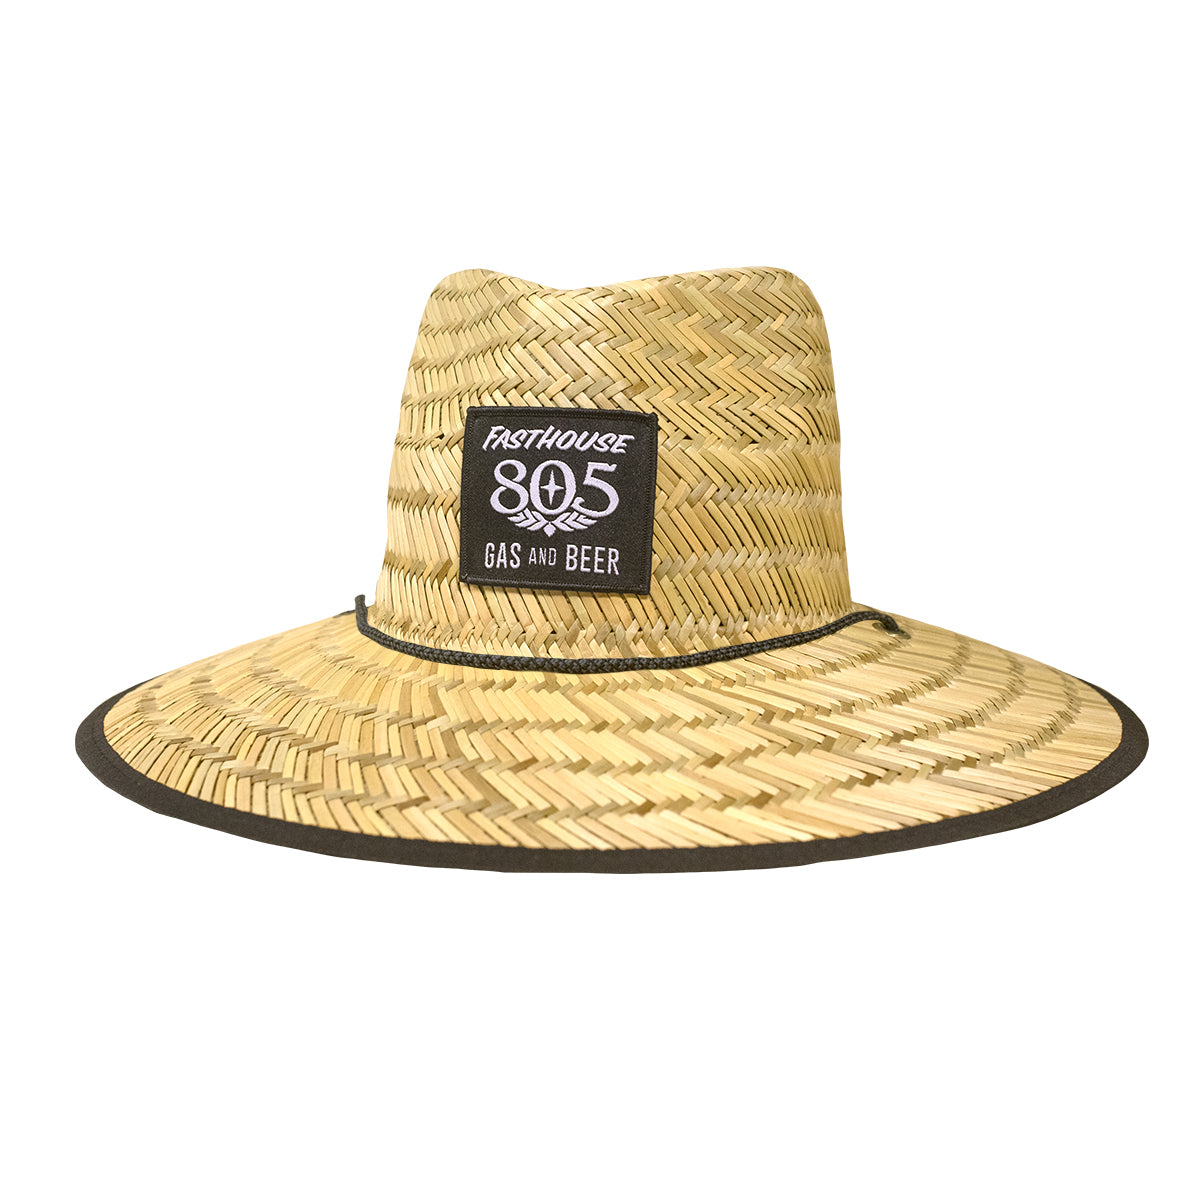 Fasthouse - 805 Hopper Hat - Natural